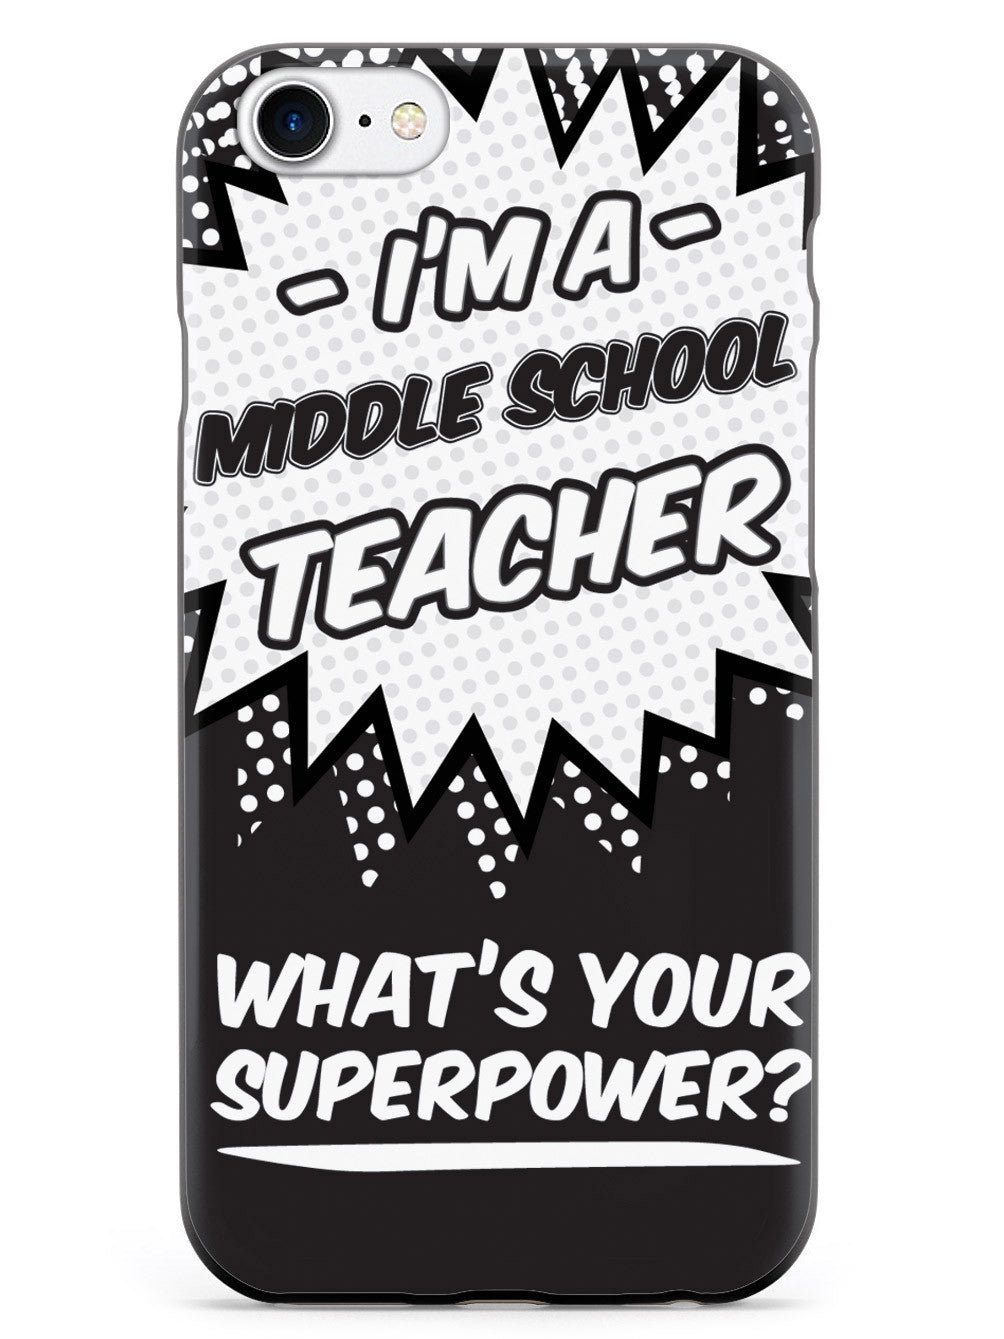 Middle School Teacher - What's Your Superpower? Case